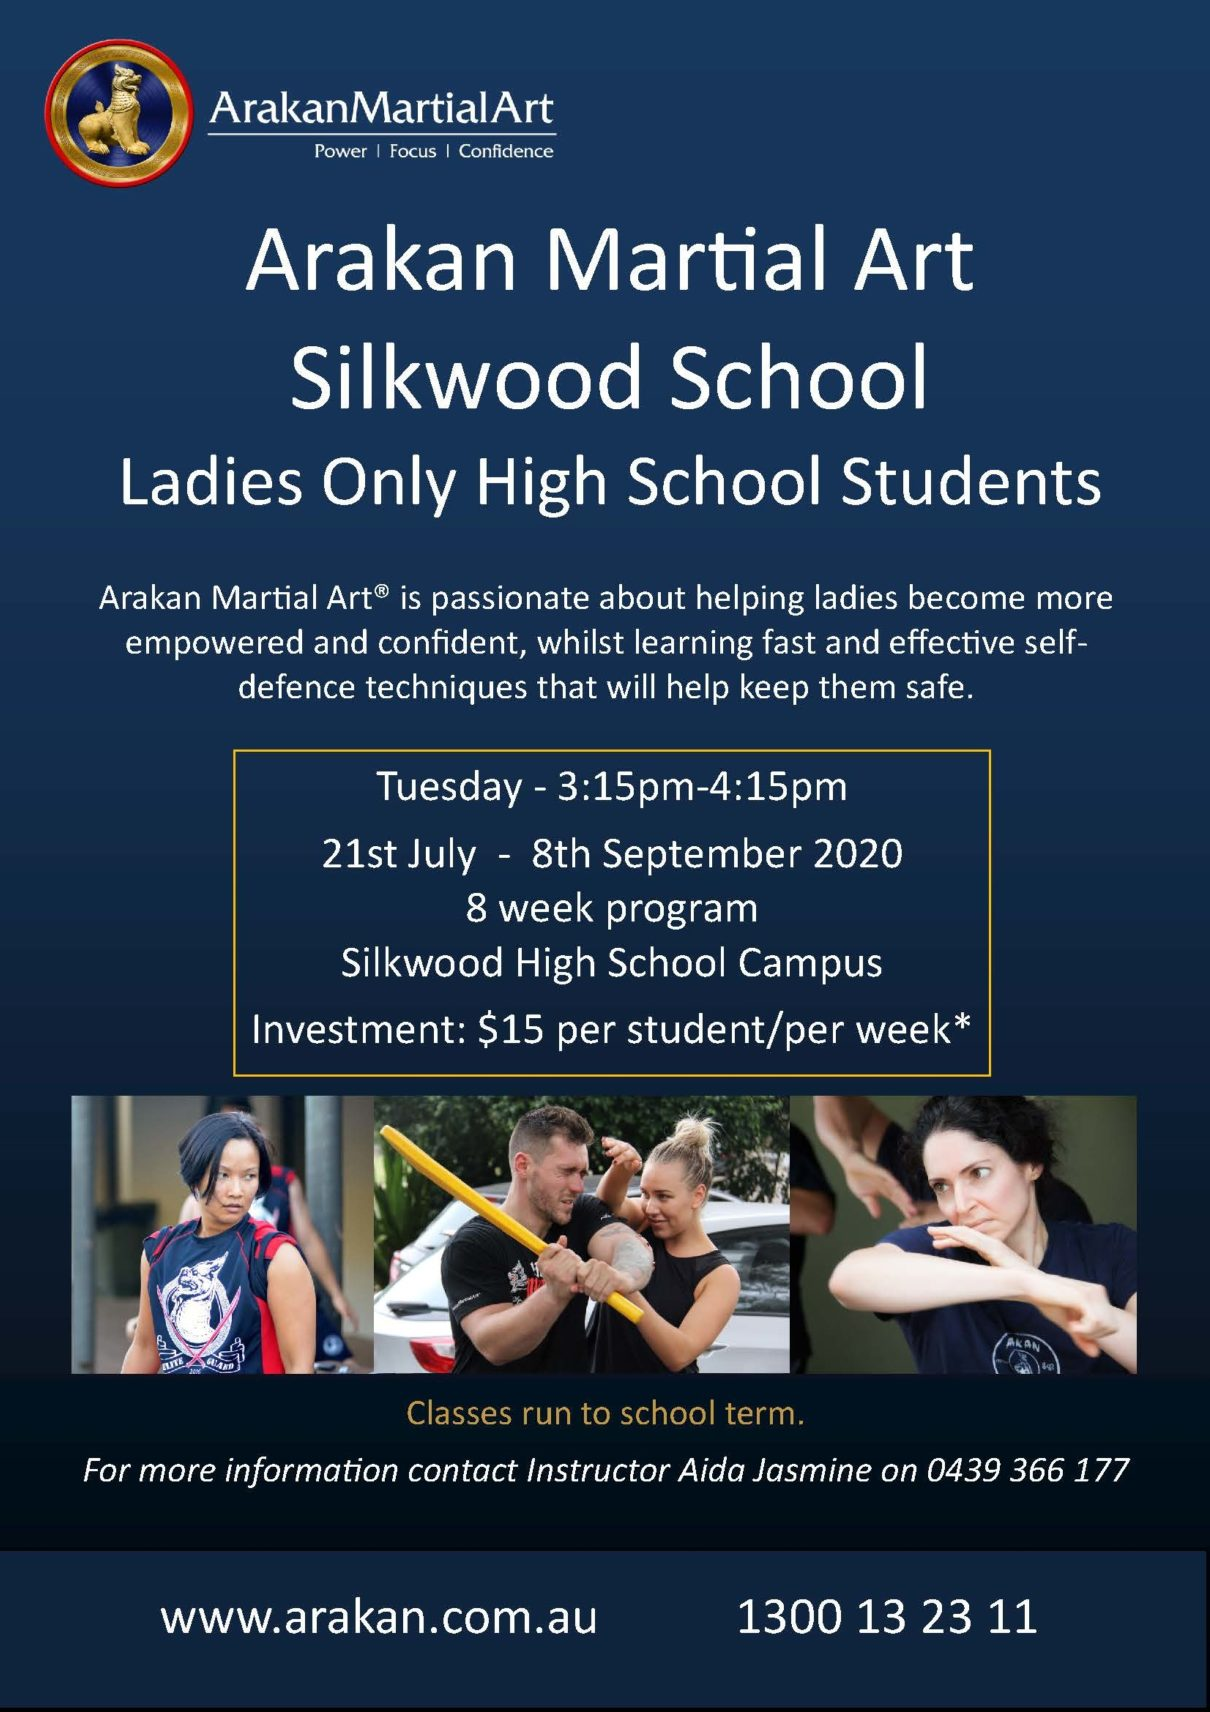 Arakan Martial Art - Silkwood School